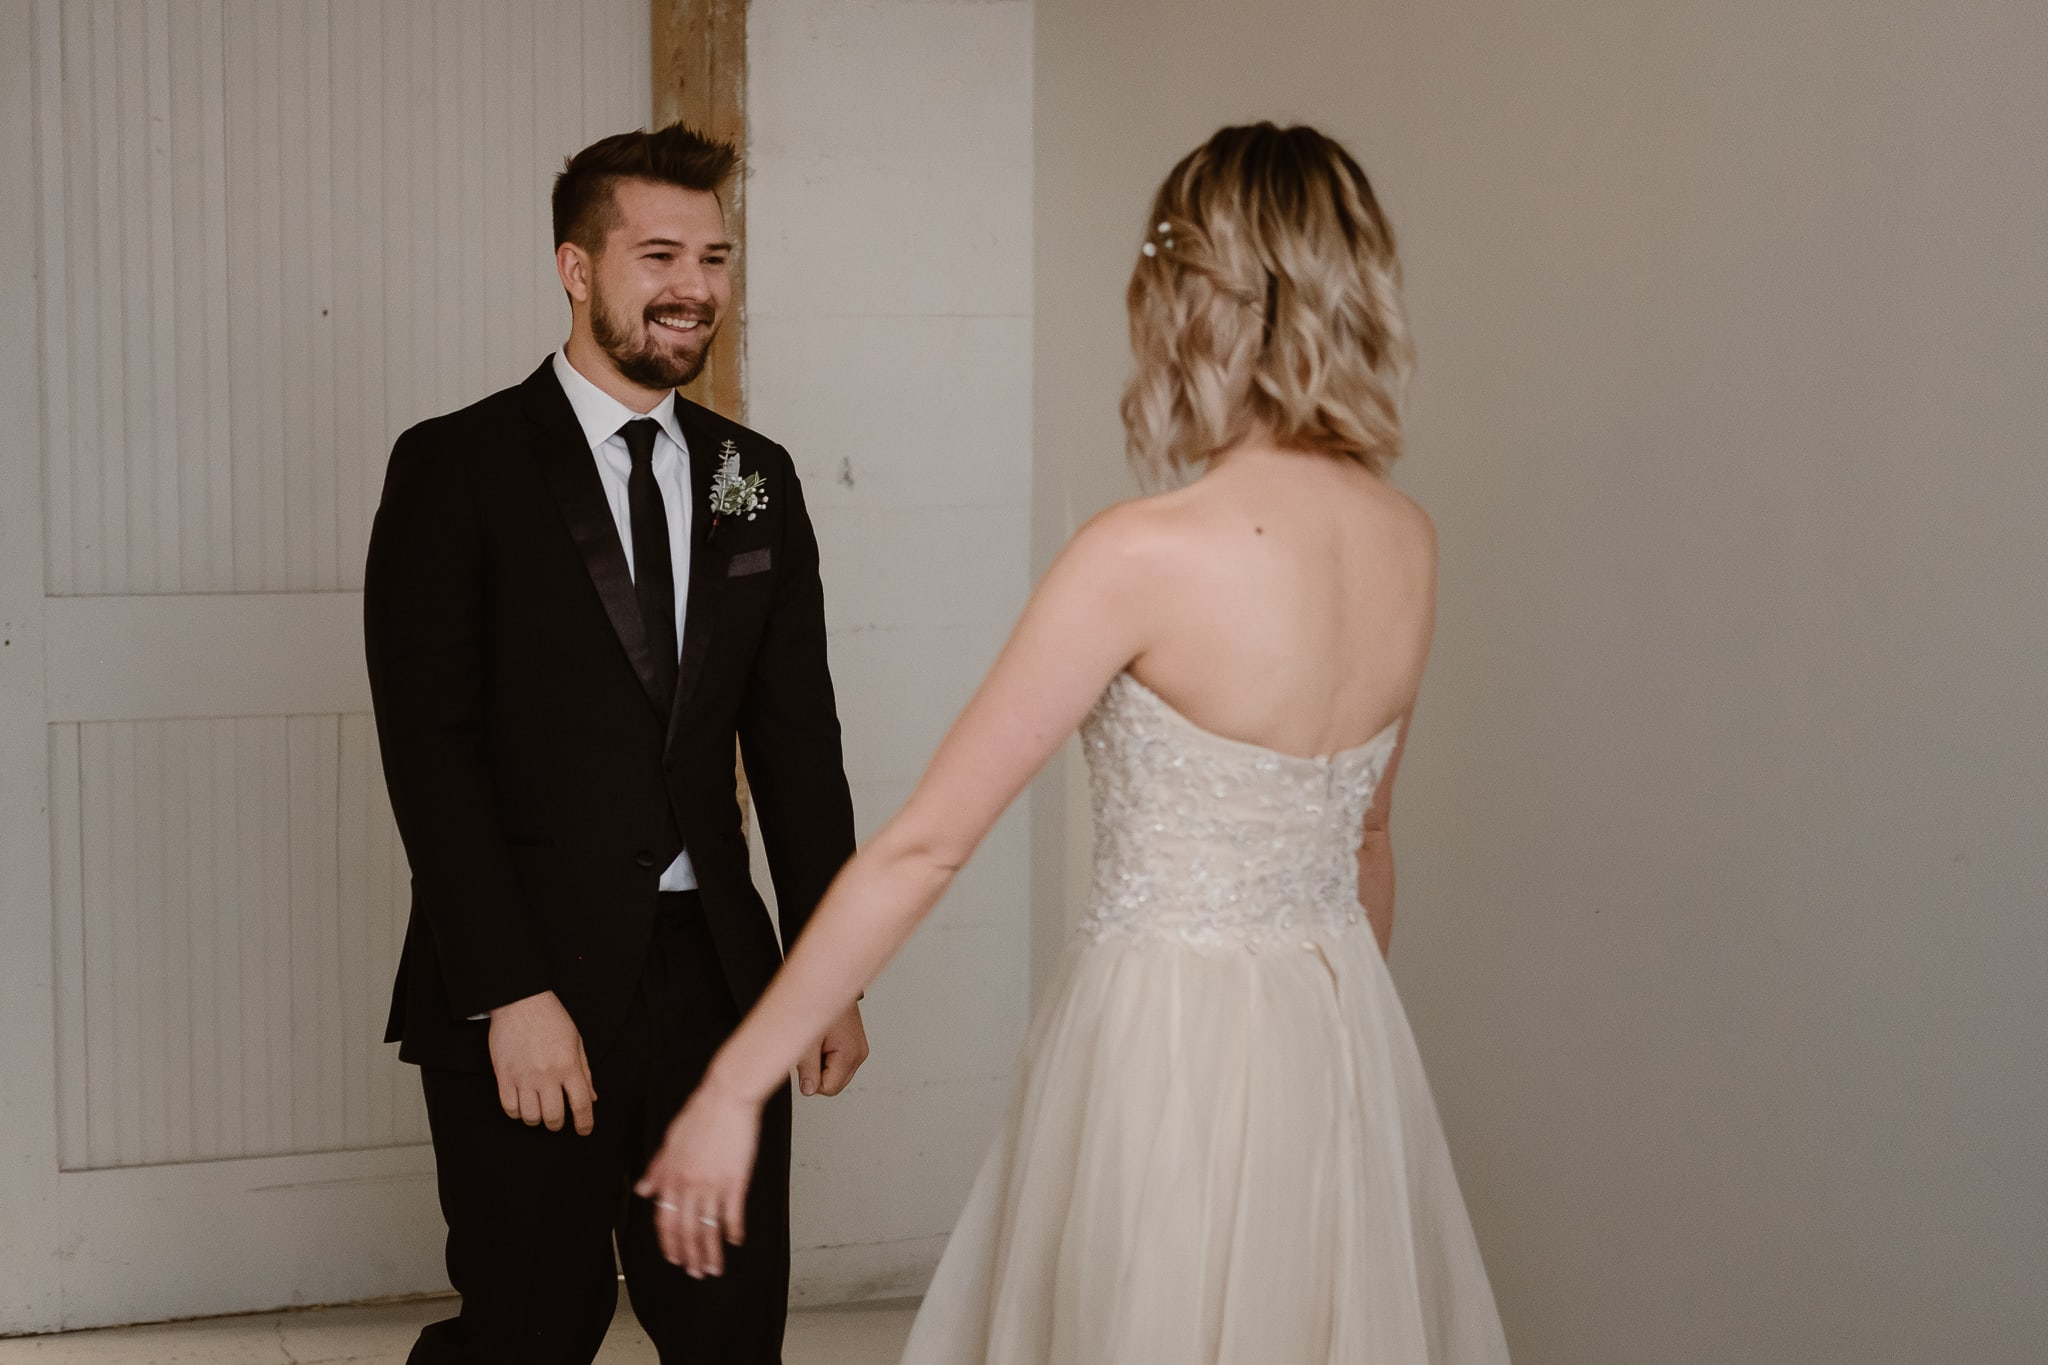 St Vrain Wedding Photographer | Longmont Wedding Photographer | Colorado Winter Wedding Photographer, Colorado industrial chic wedding, bride and groom first look